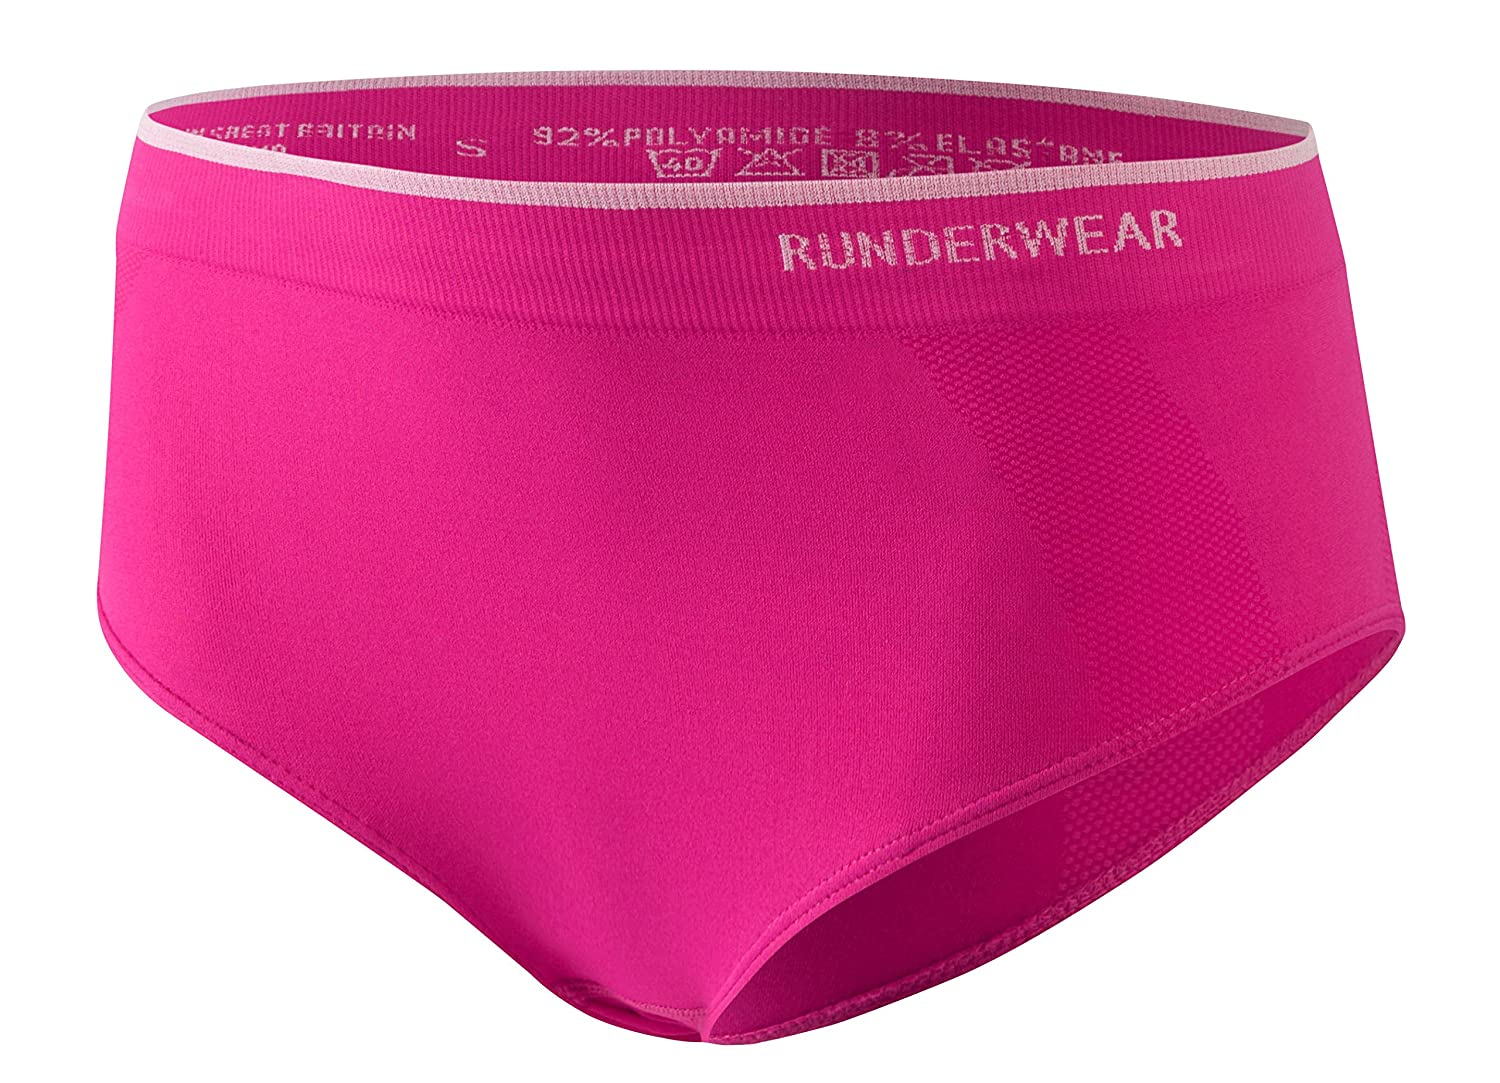 Runderwear Women's Hipster **2 Pair Pack**   Chafe-Free Performance Underwear with Seamless Technology RB0129-X2